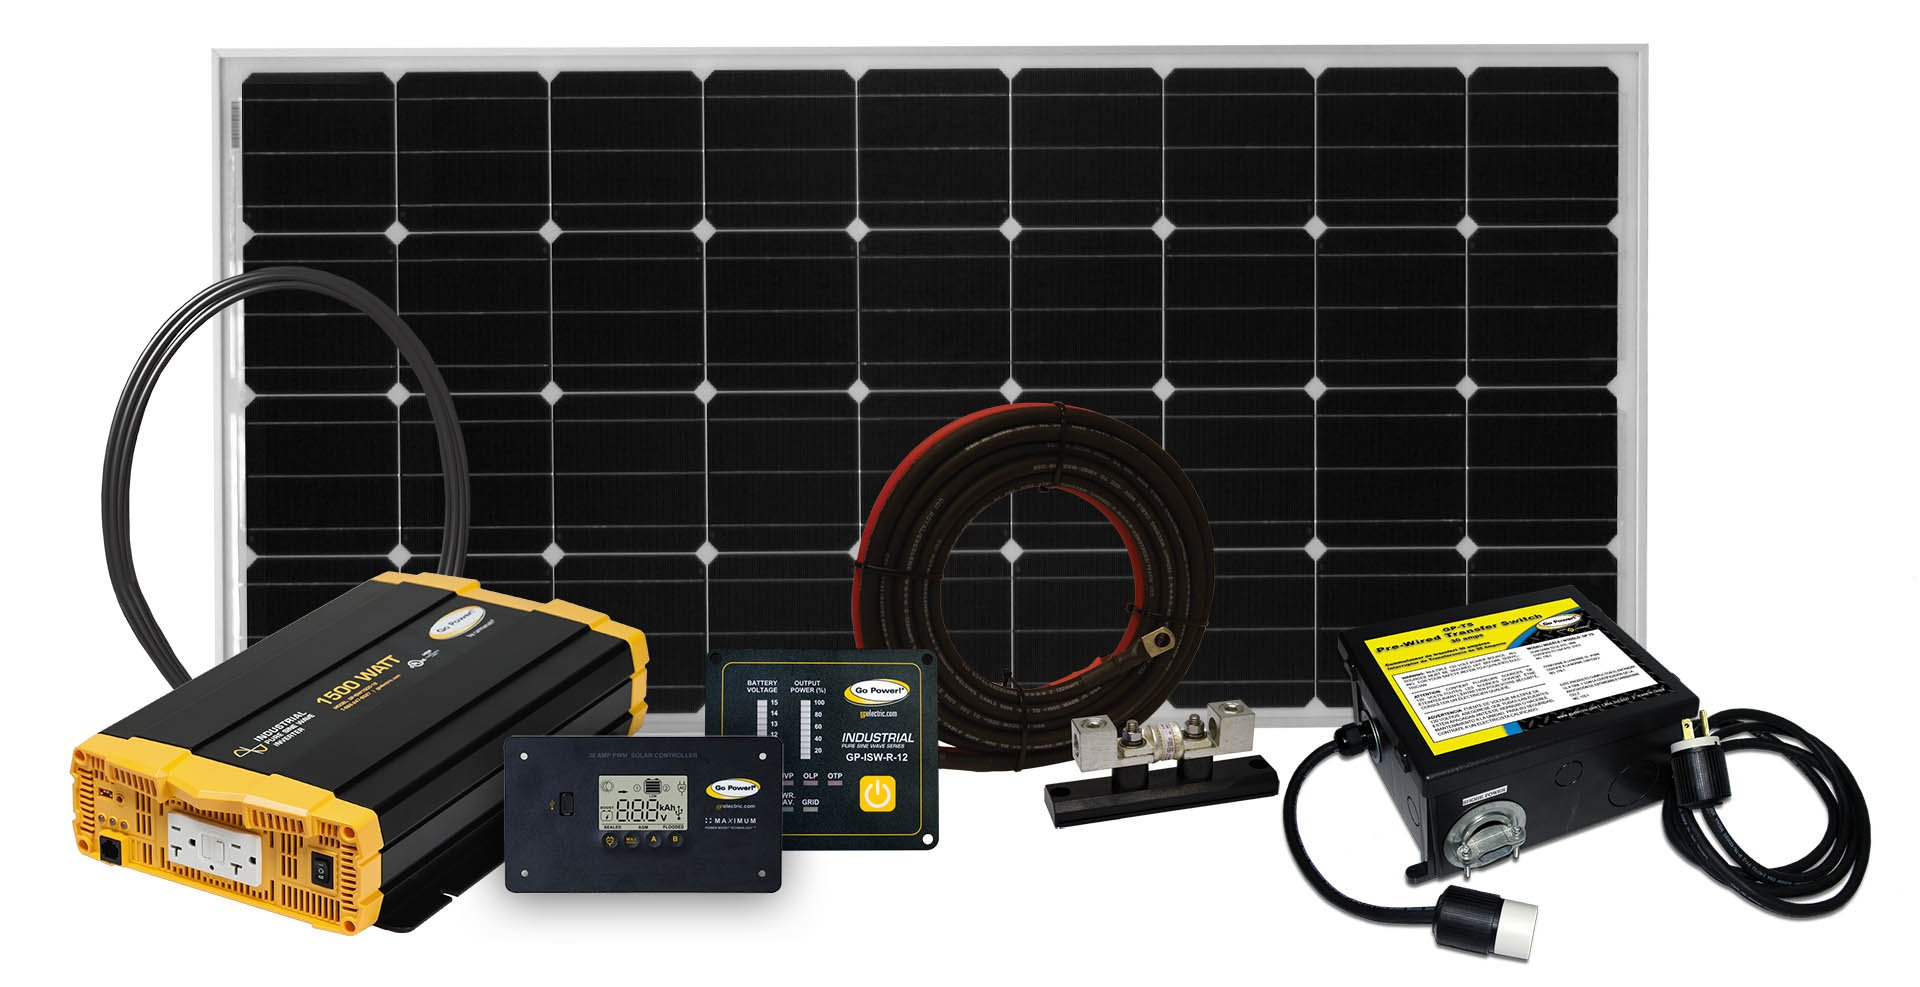 Go Power! Weekender SW Complete Solar and Inverter System with 160 Watts of Solar